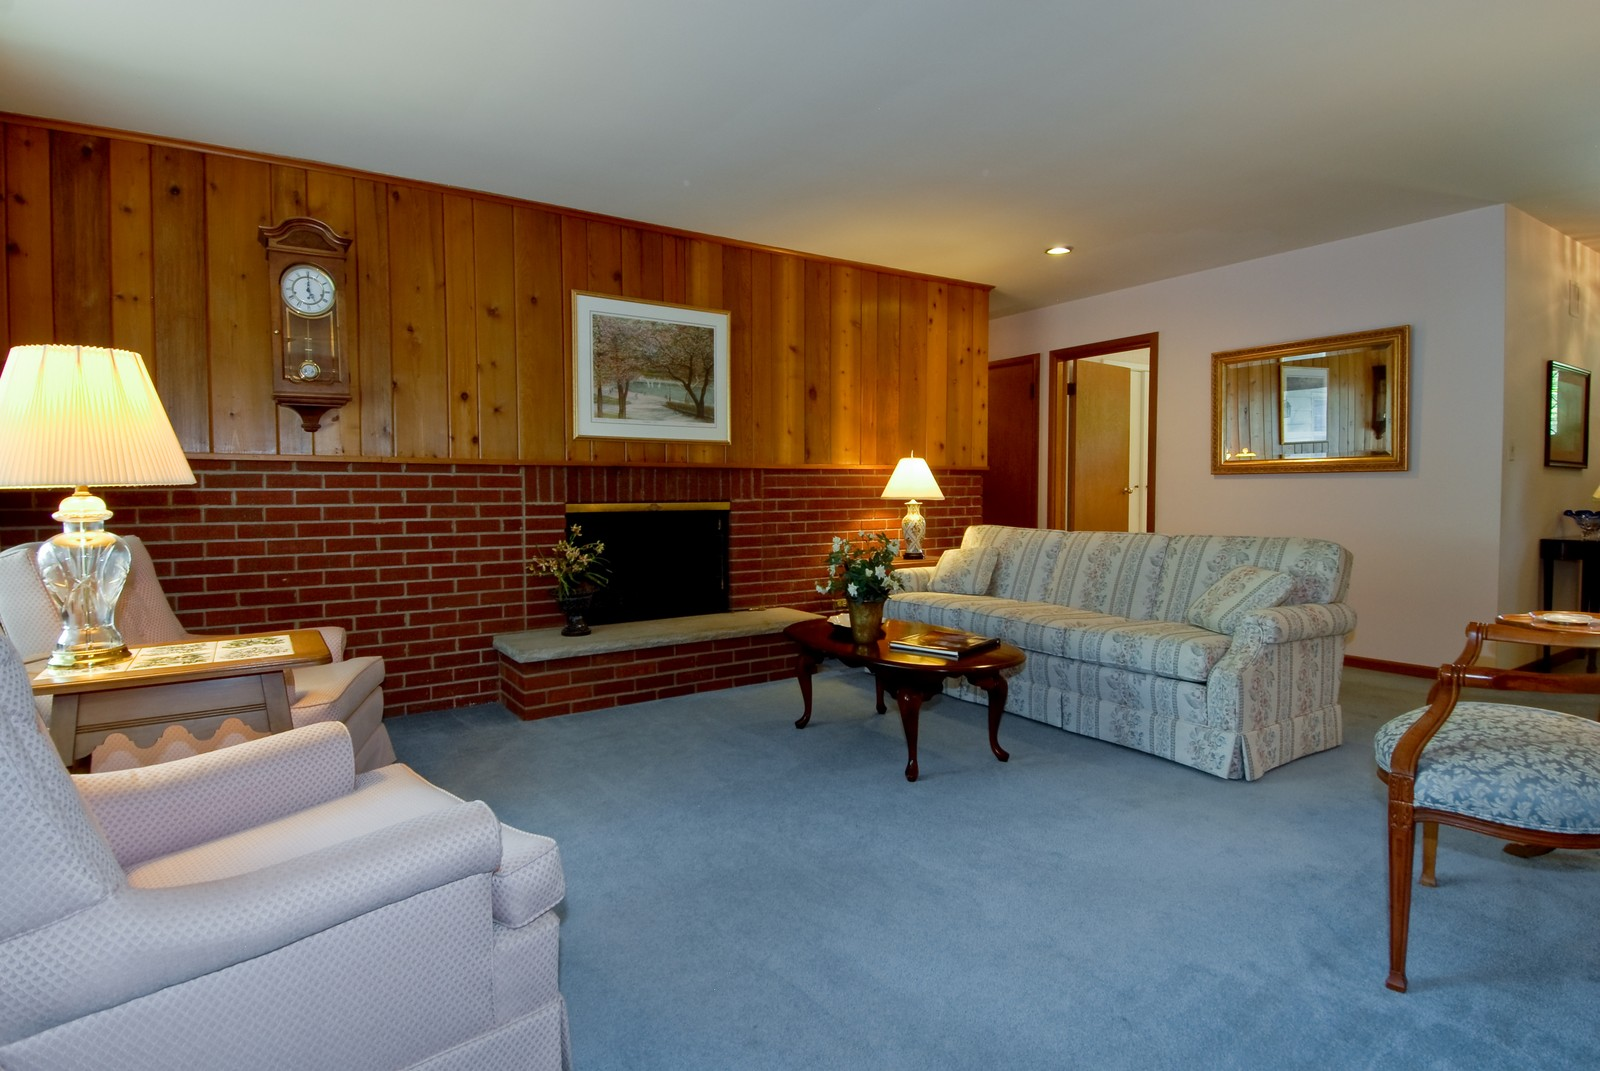 Real Estate Photography - 525 S McKinley St, St Charles, IL, 60174 - Living Room